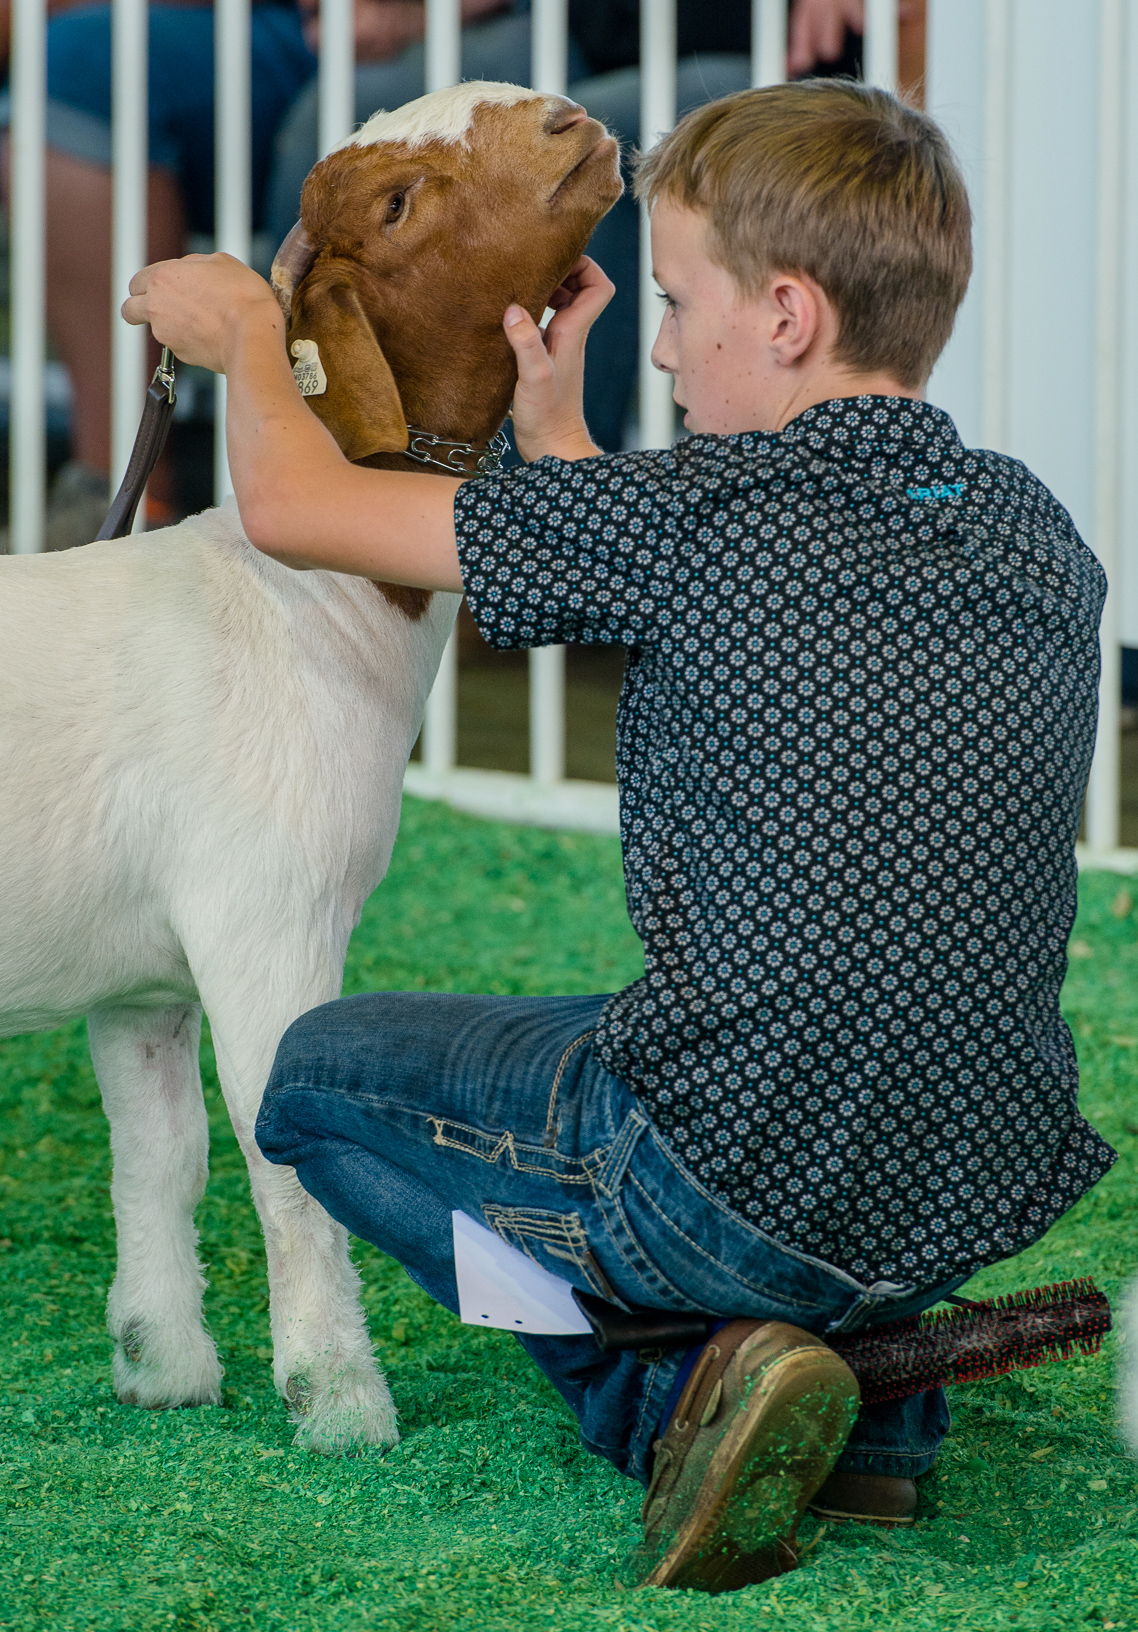 Blake Reynolds, Earlham, scratches his goat's neck while waiting for a decision from the judge in the Open Goat Show. Photo credit: Joseph L. Murphy/Iowa Soybean Association